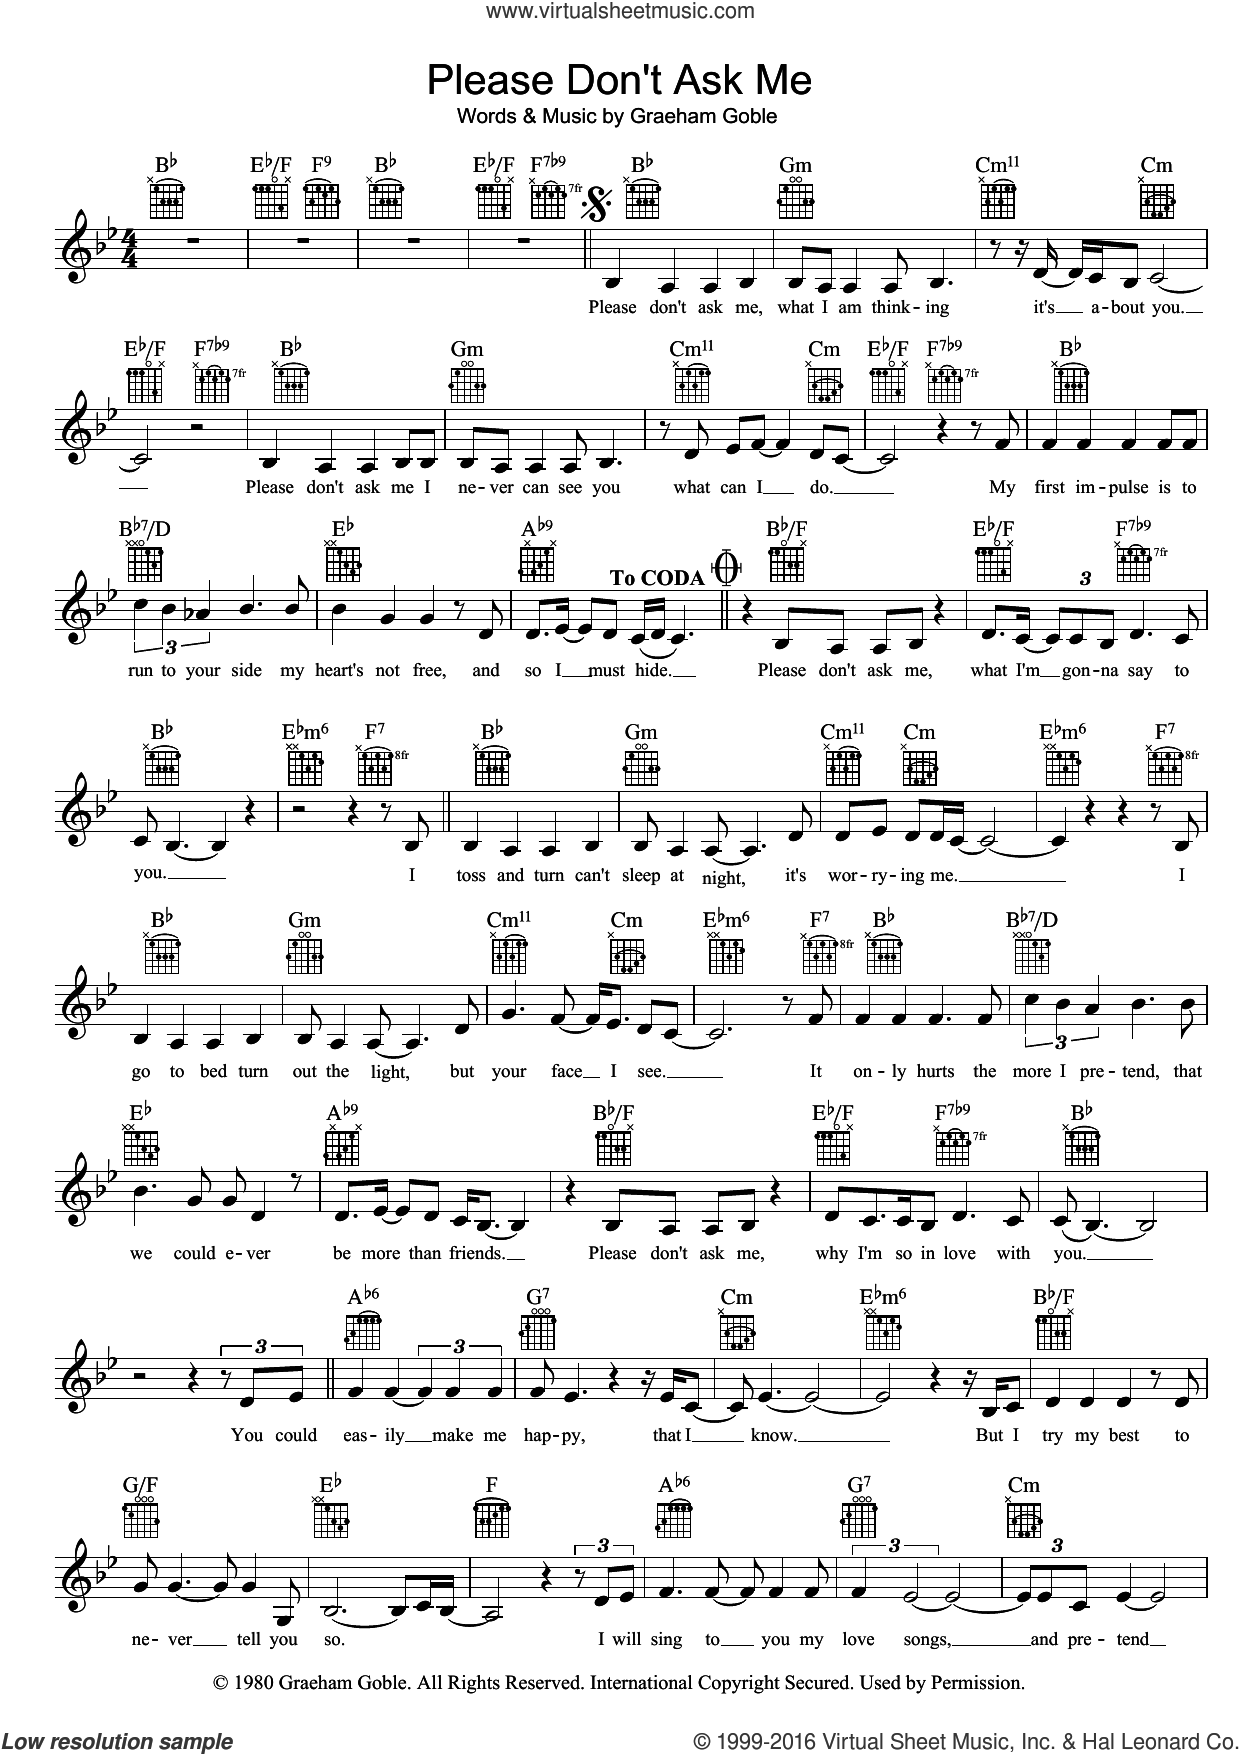 Please Don't Ask Me sheet music for voice and other instruments (fake book) by The Little River Band and Graeham Goble, intermediate skill level